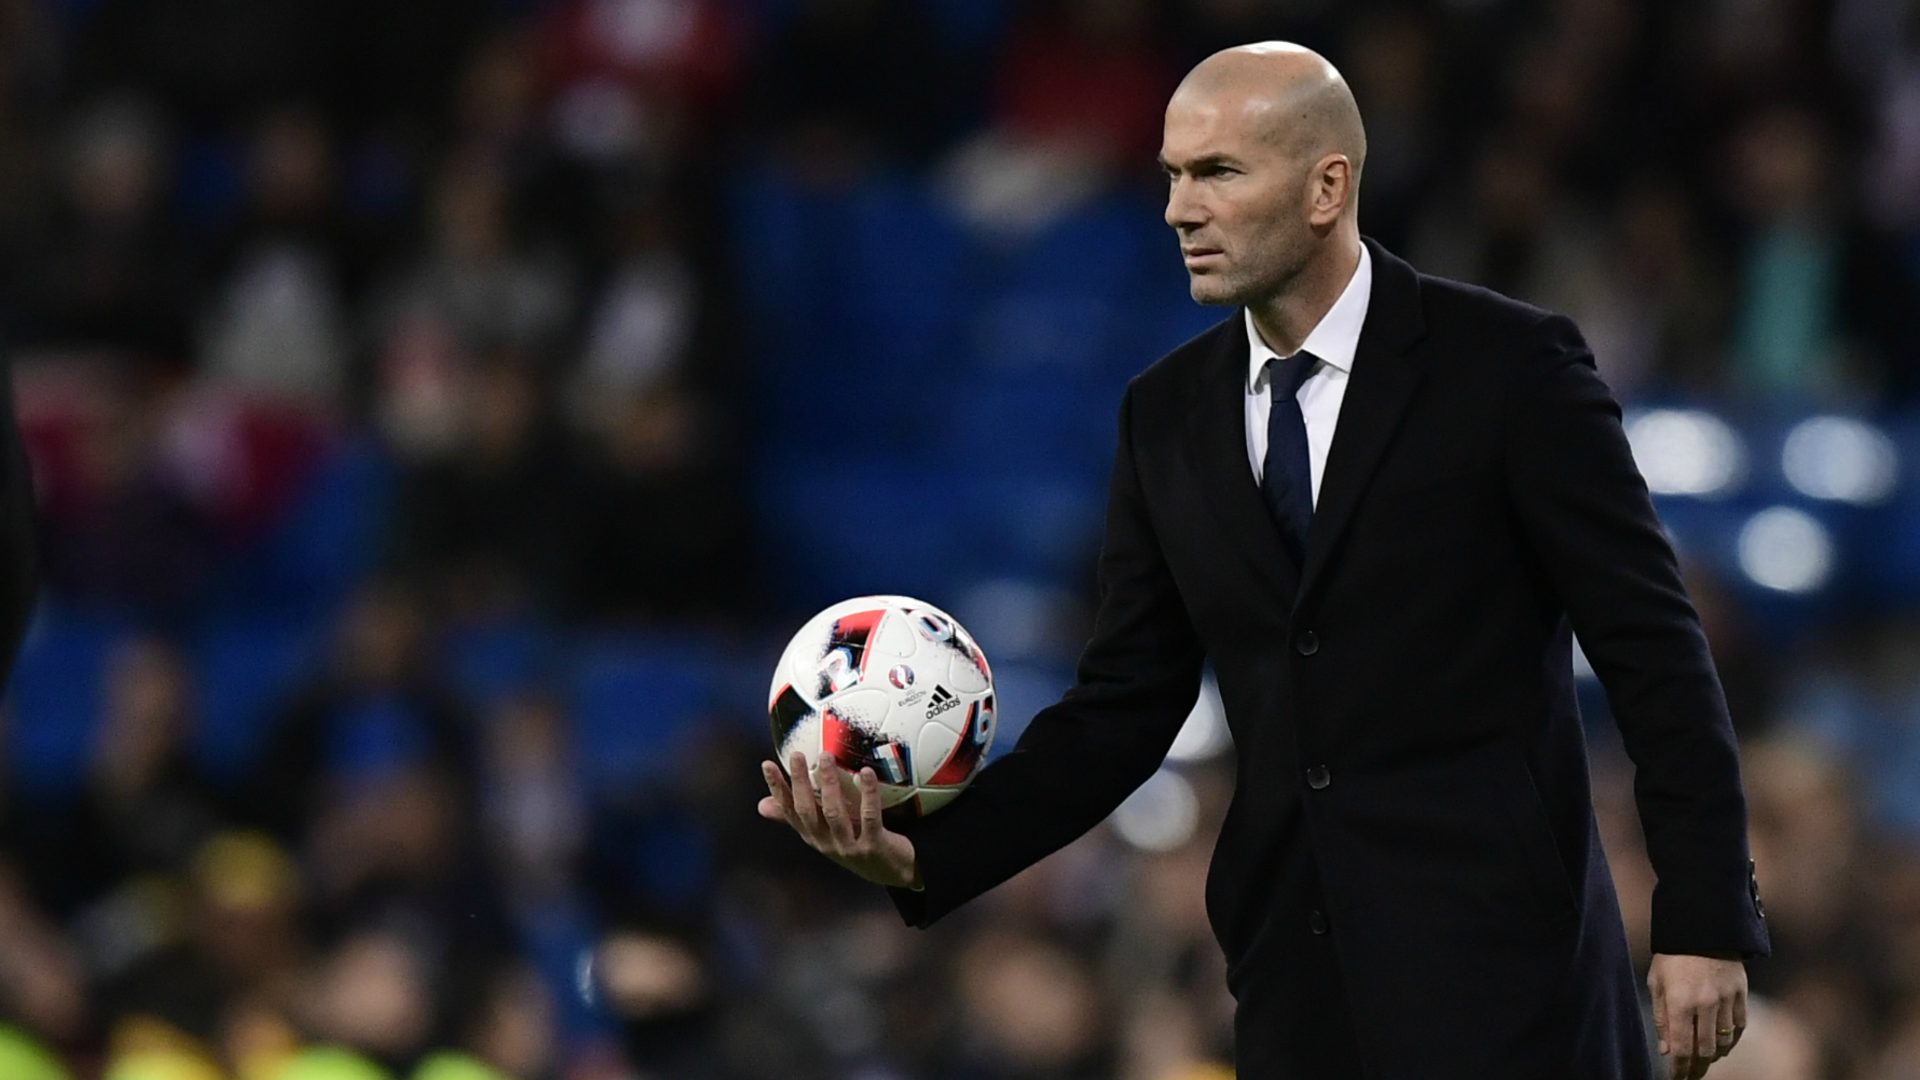 Zidane admits his Real Madrid job is not safe and says he is not preparing for pre-season